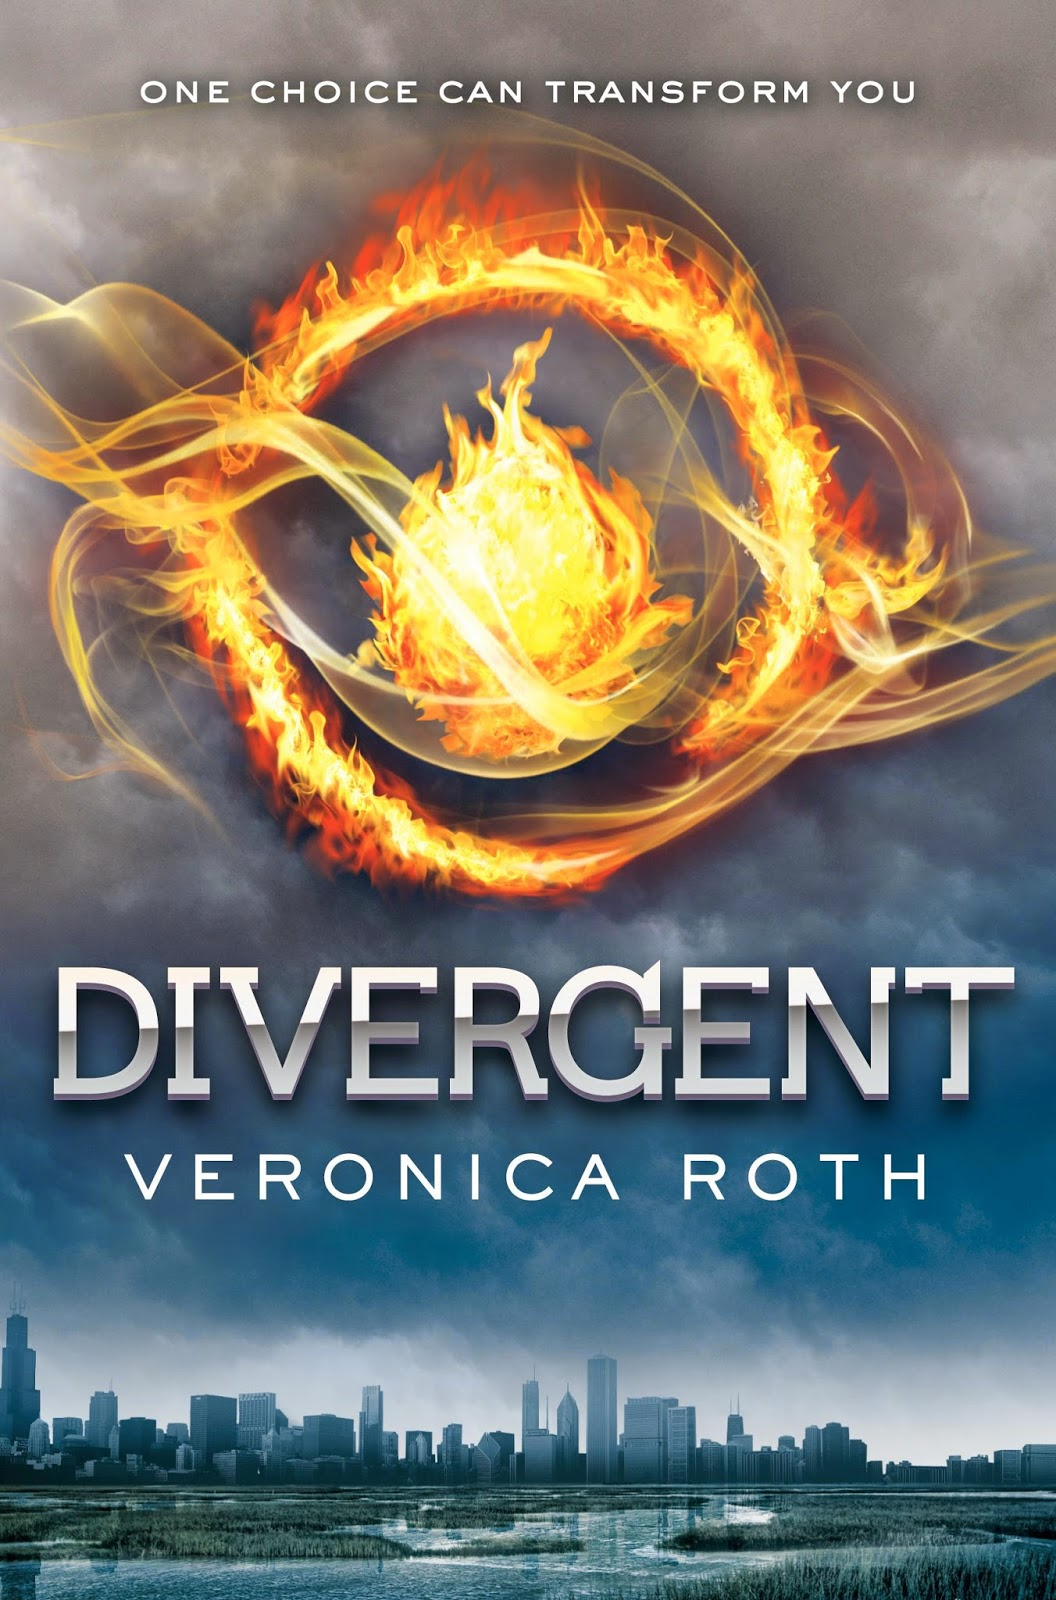 Divergent By Veronica Roth Full Audiobook Free Download